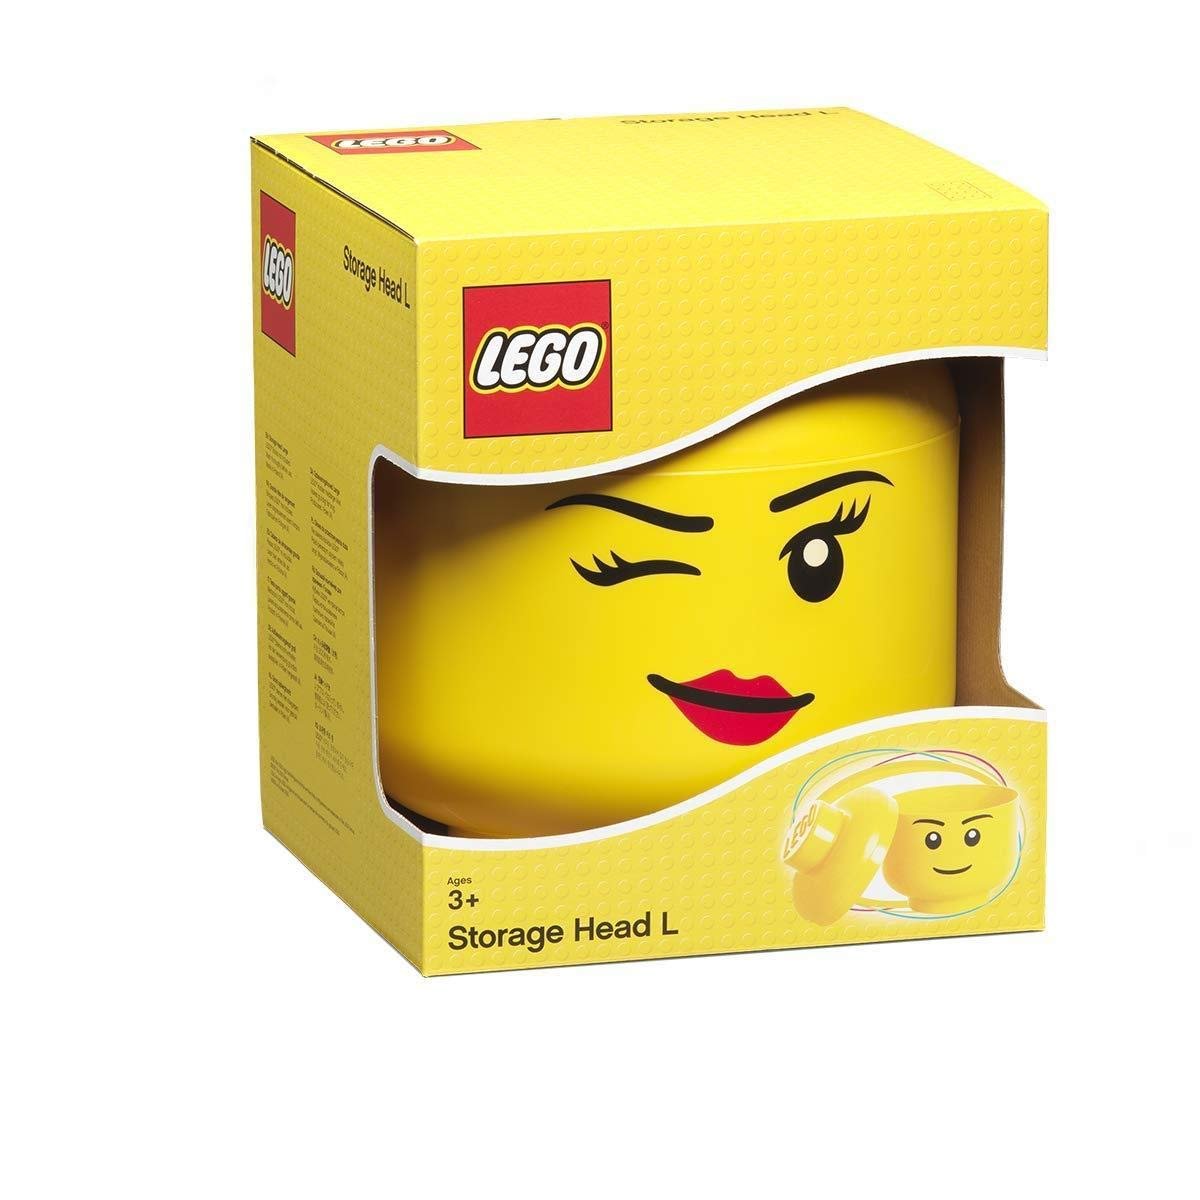 LEGO Storage Head, Large, Winking, 9-1/2 x 9-1/2 x 10-3/4 Inches, Yellow